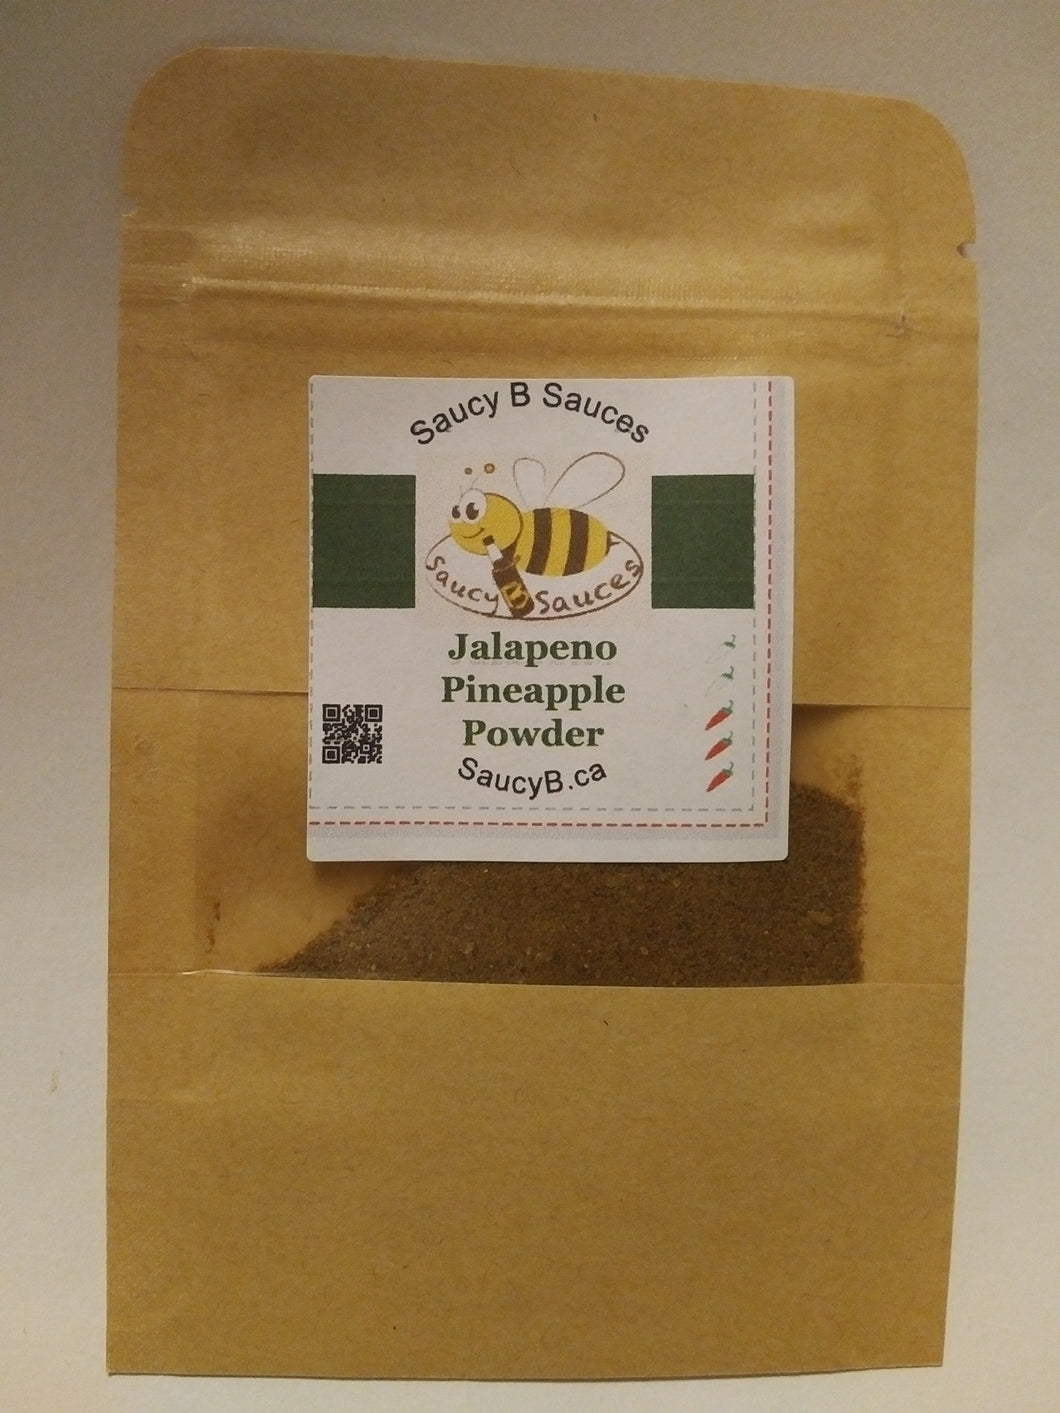 Jalapeno Pineapple powder